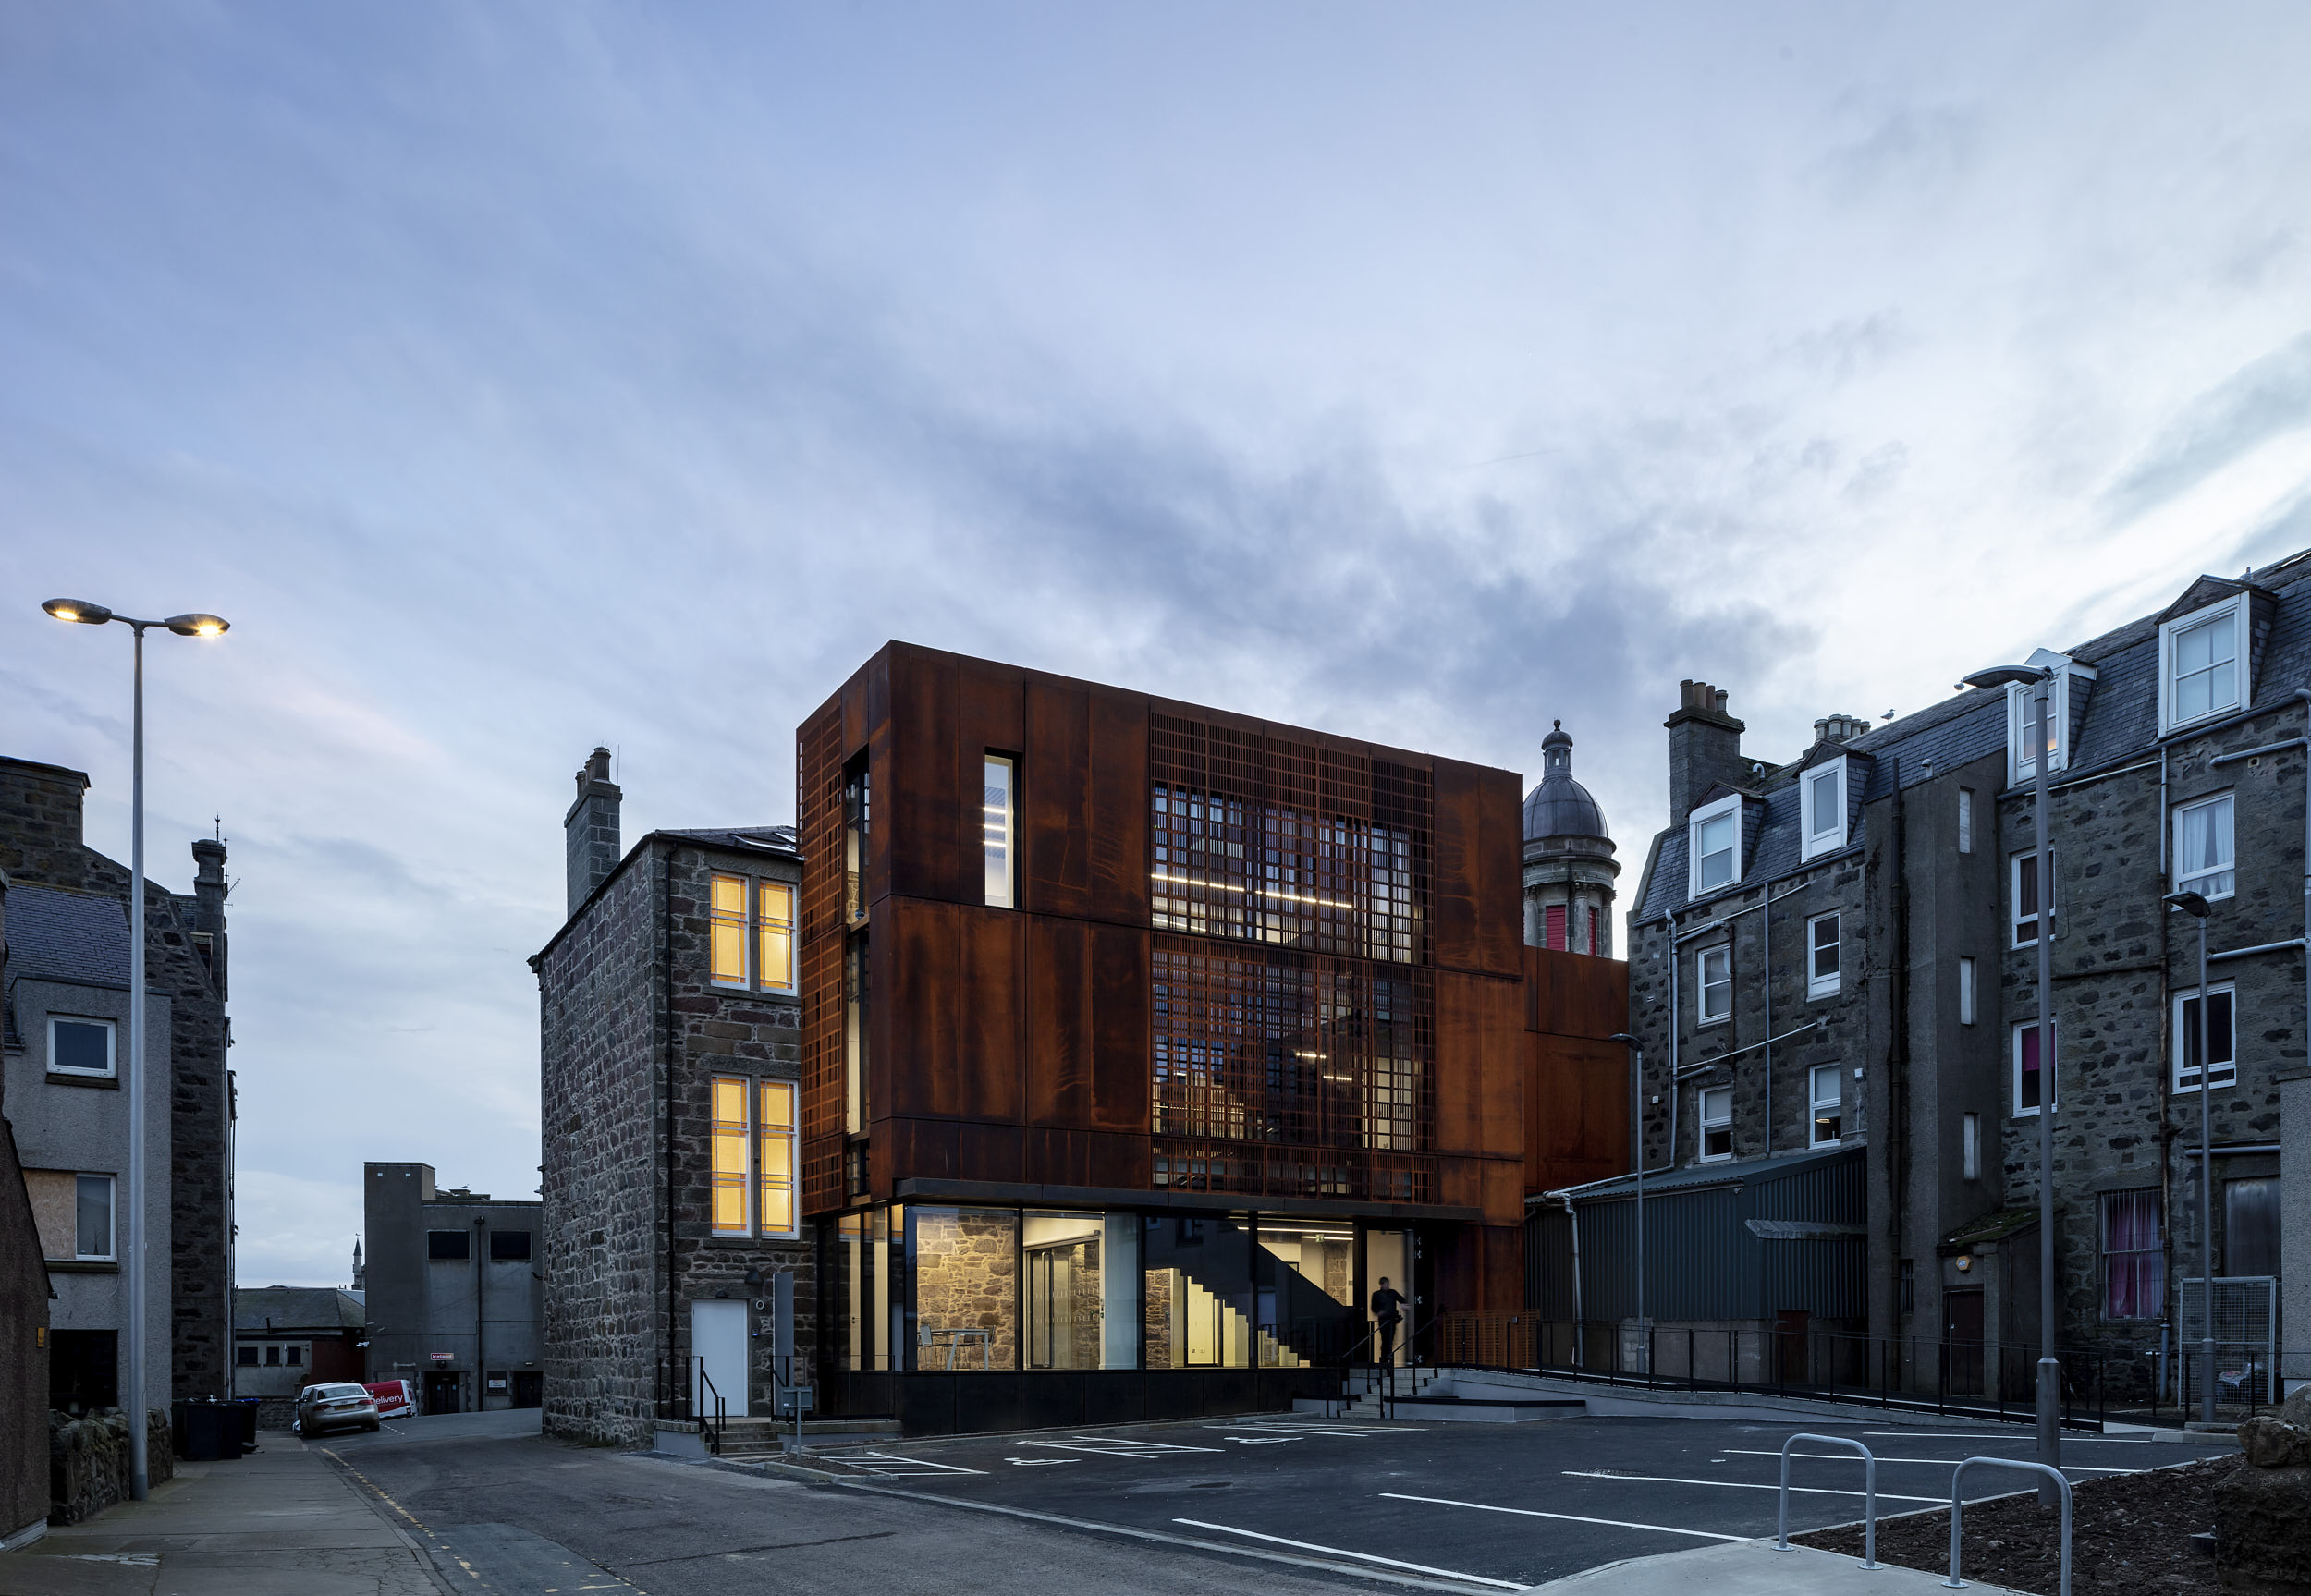 Exterior dusk photograph that shows the contrasting colours of the cor-ten steel in its traditional context.